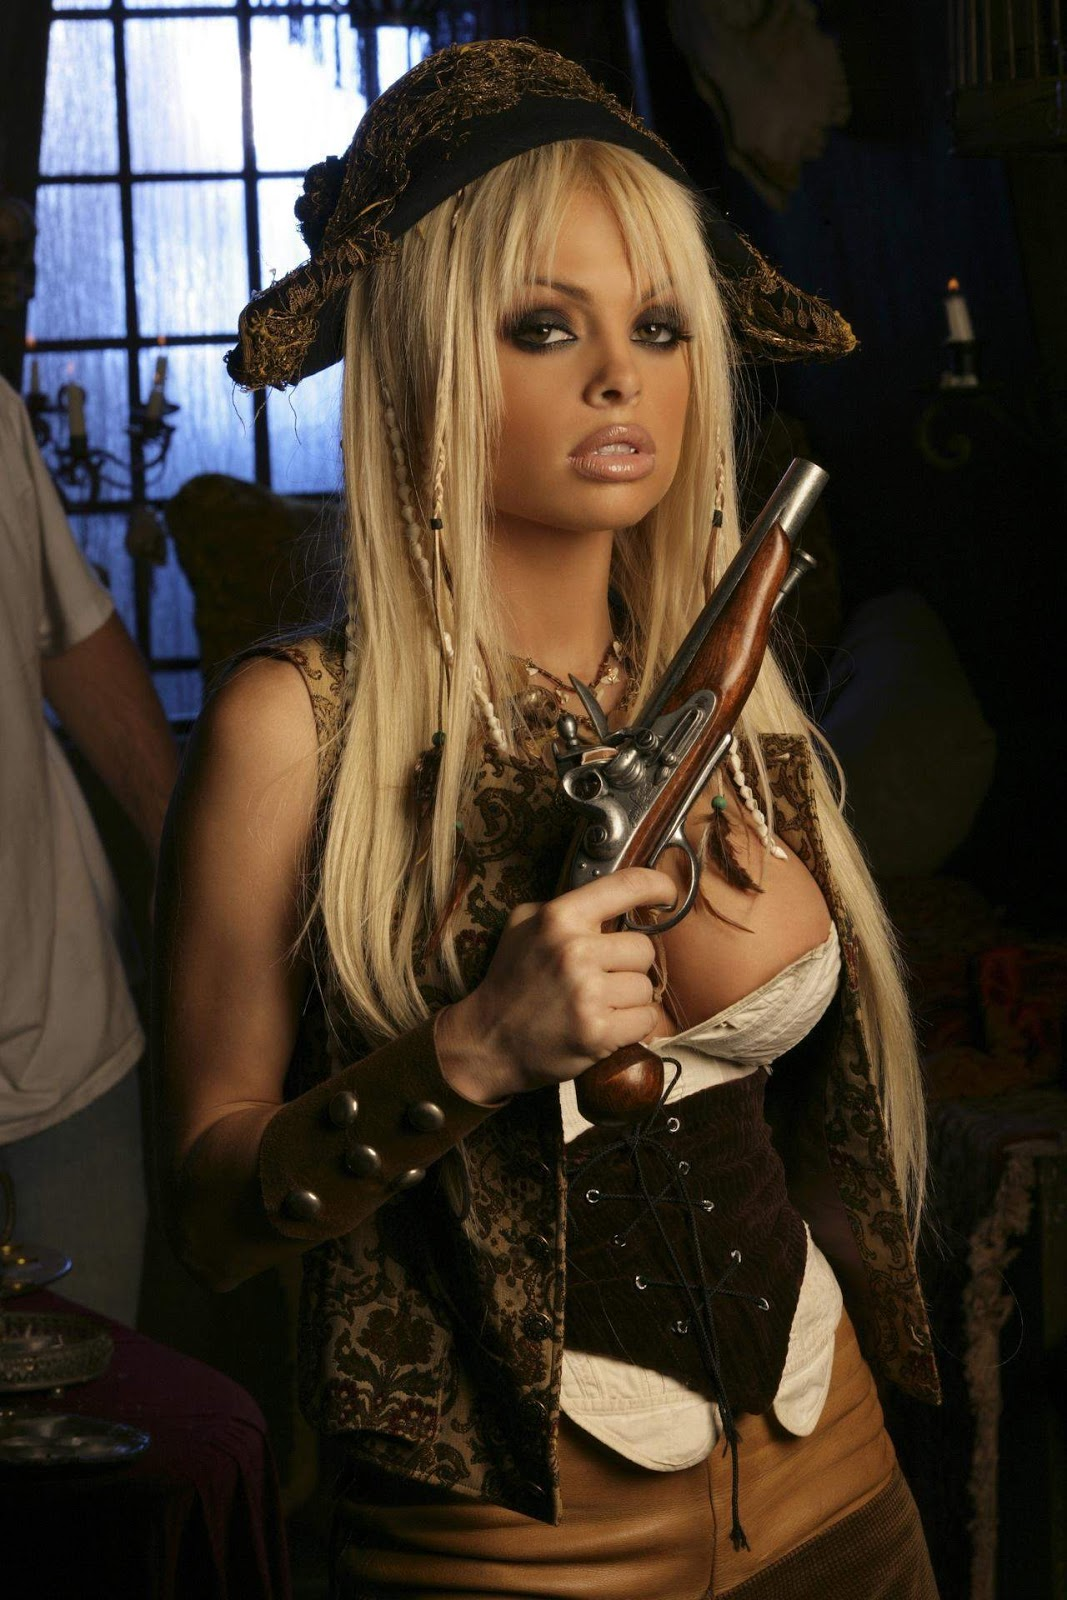 Jenson jesse jane pirates love have